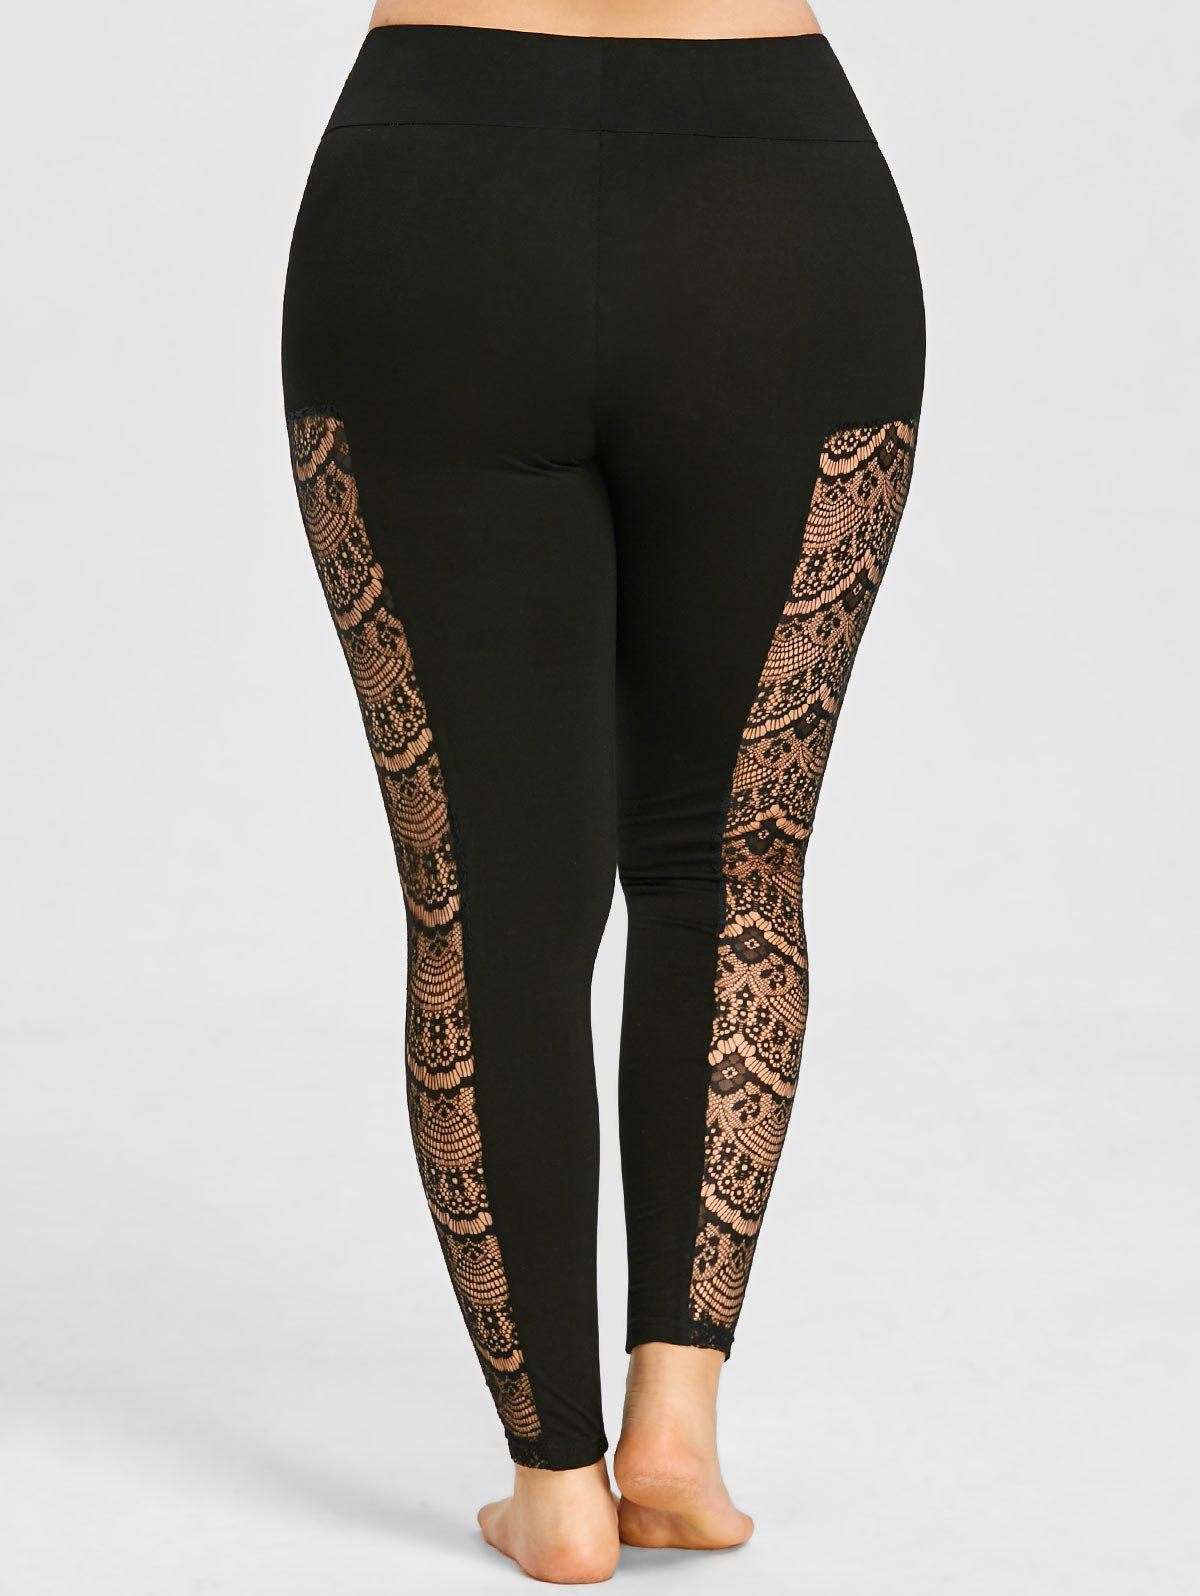 Plus Size See Thru Lace Insert Leggings - BLACK 5XL